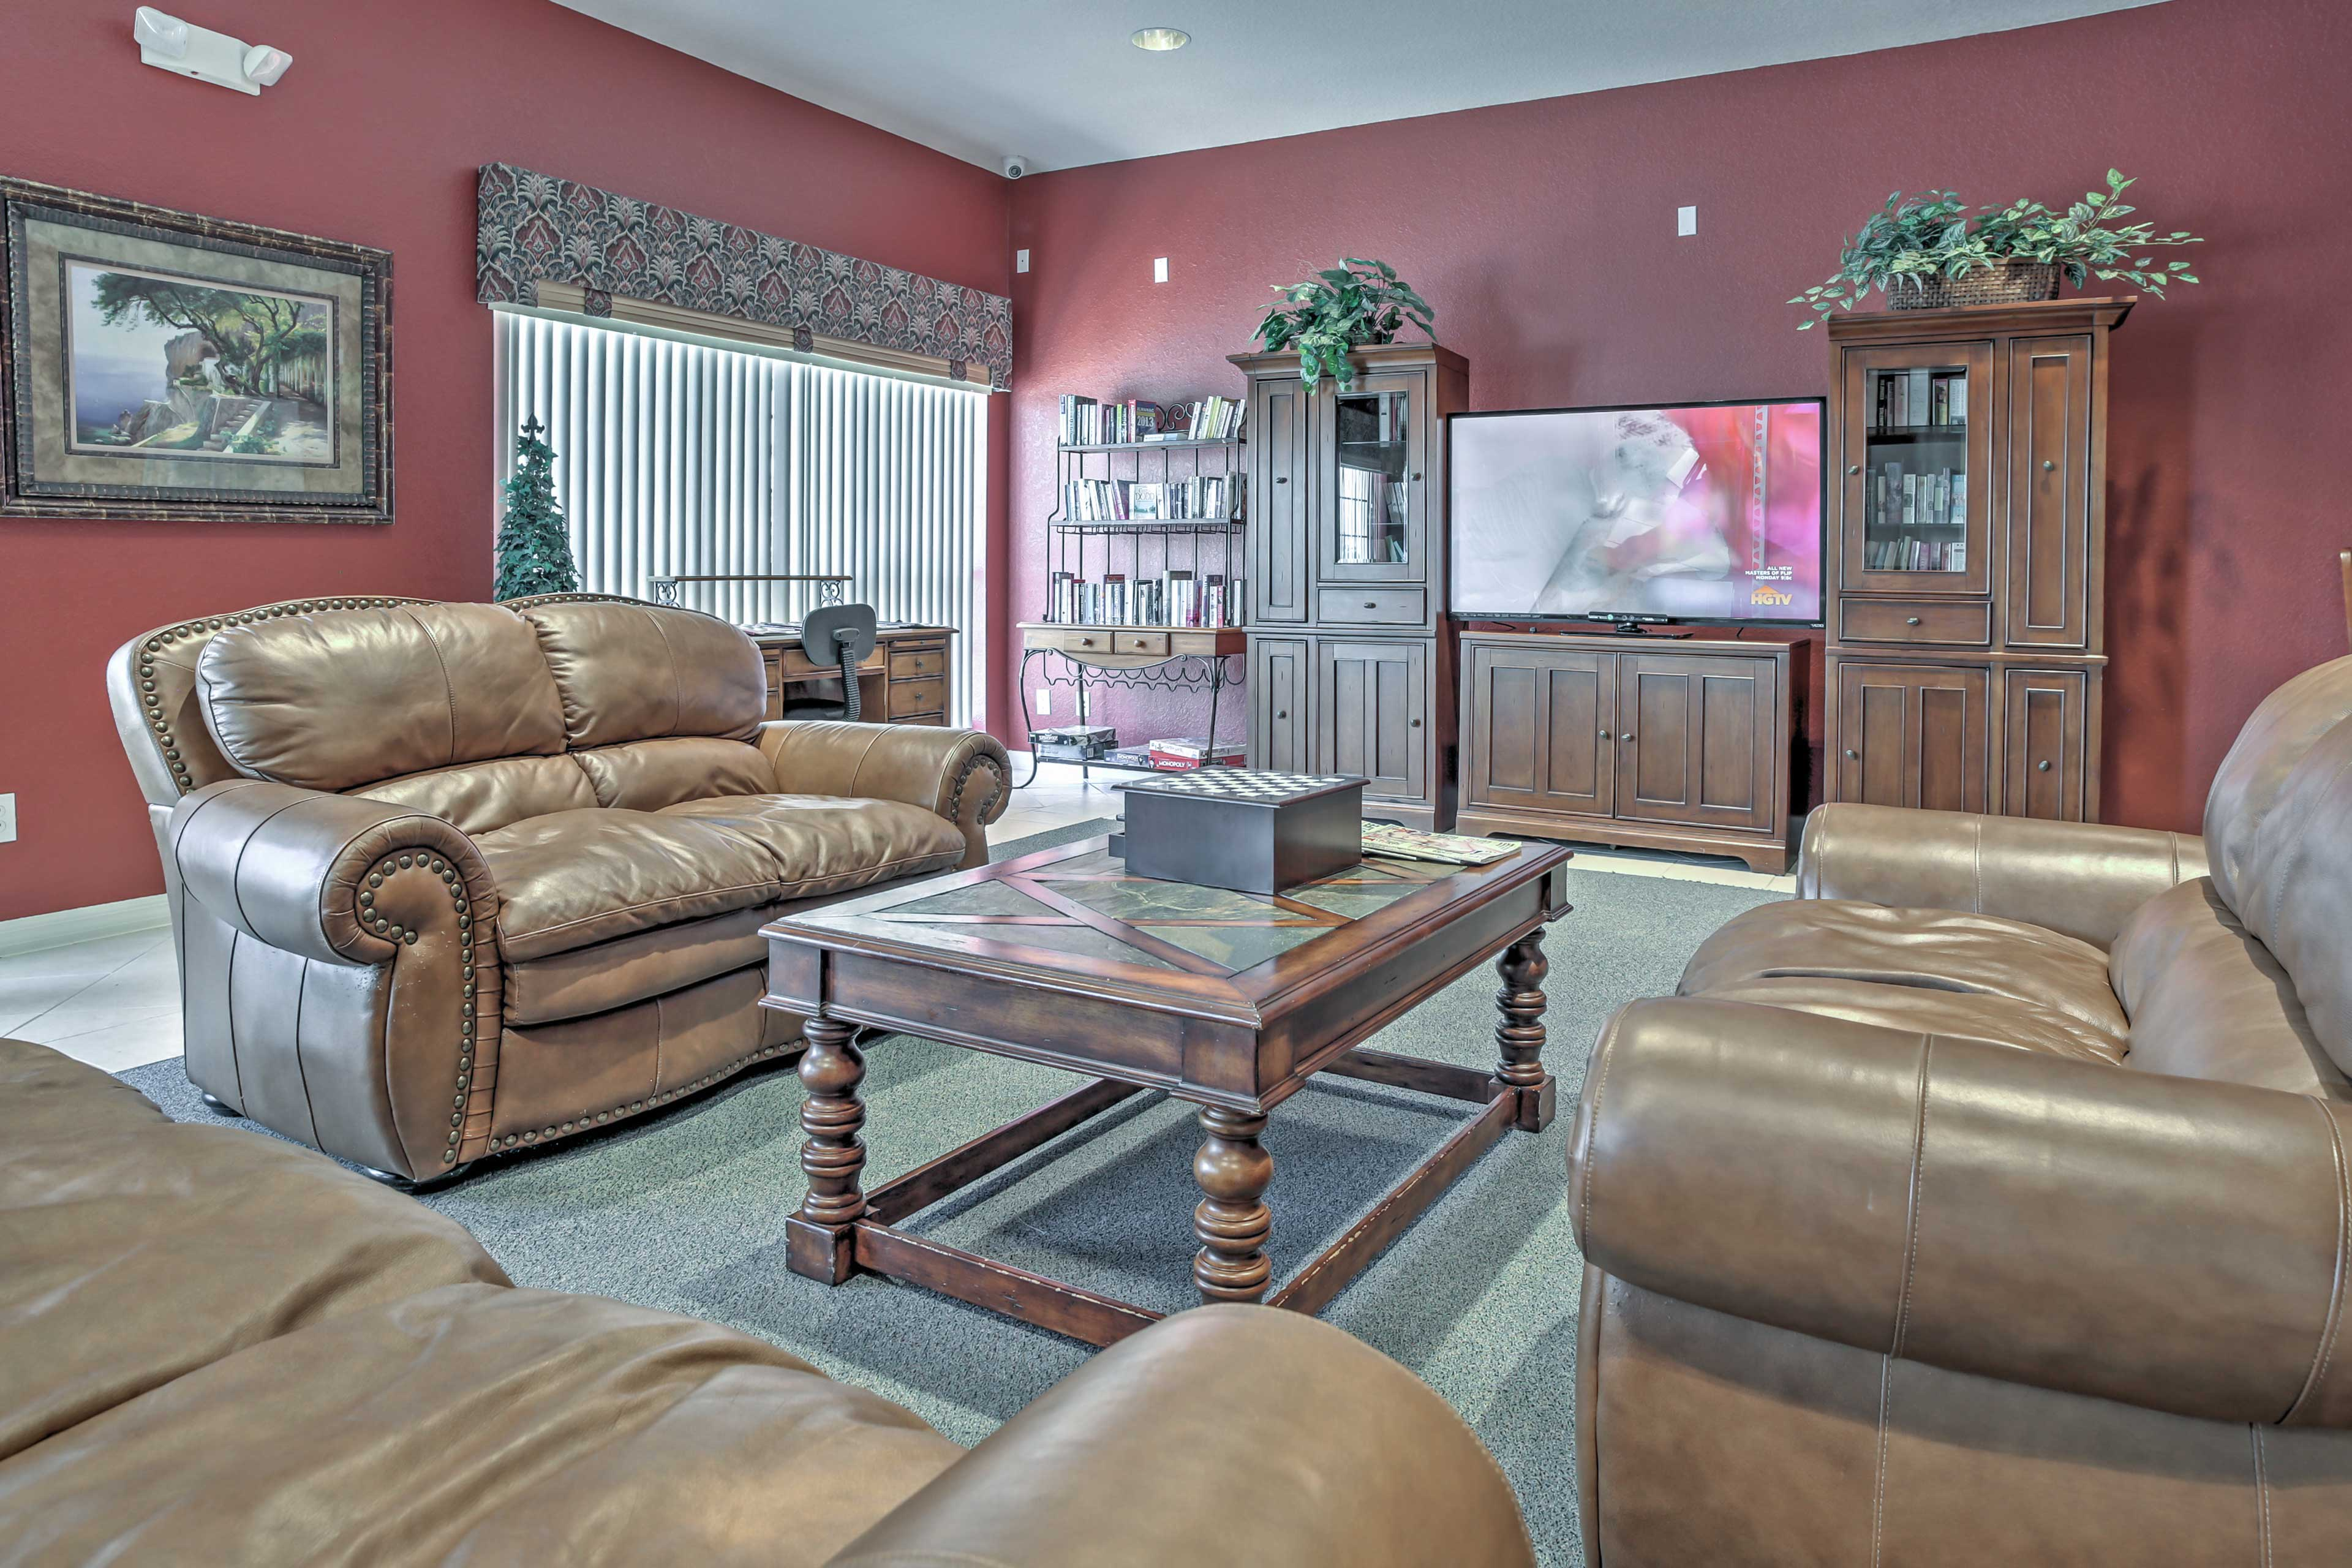 Gather in the clubhouse's living area to watch your favorite TV shows.